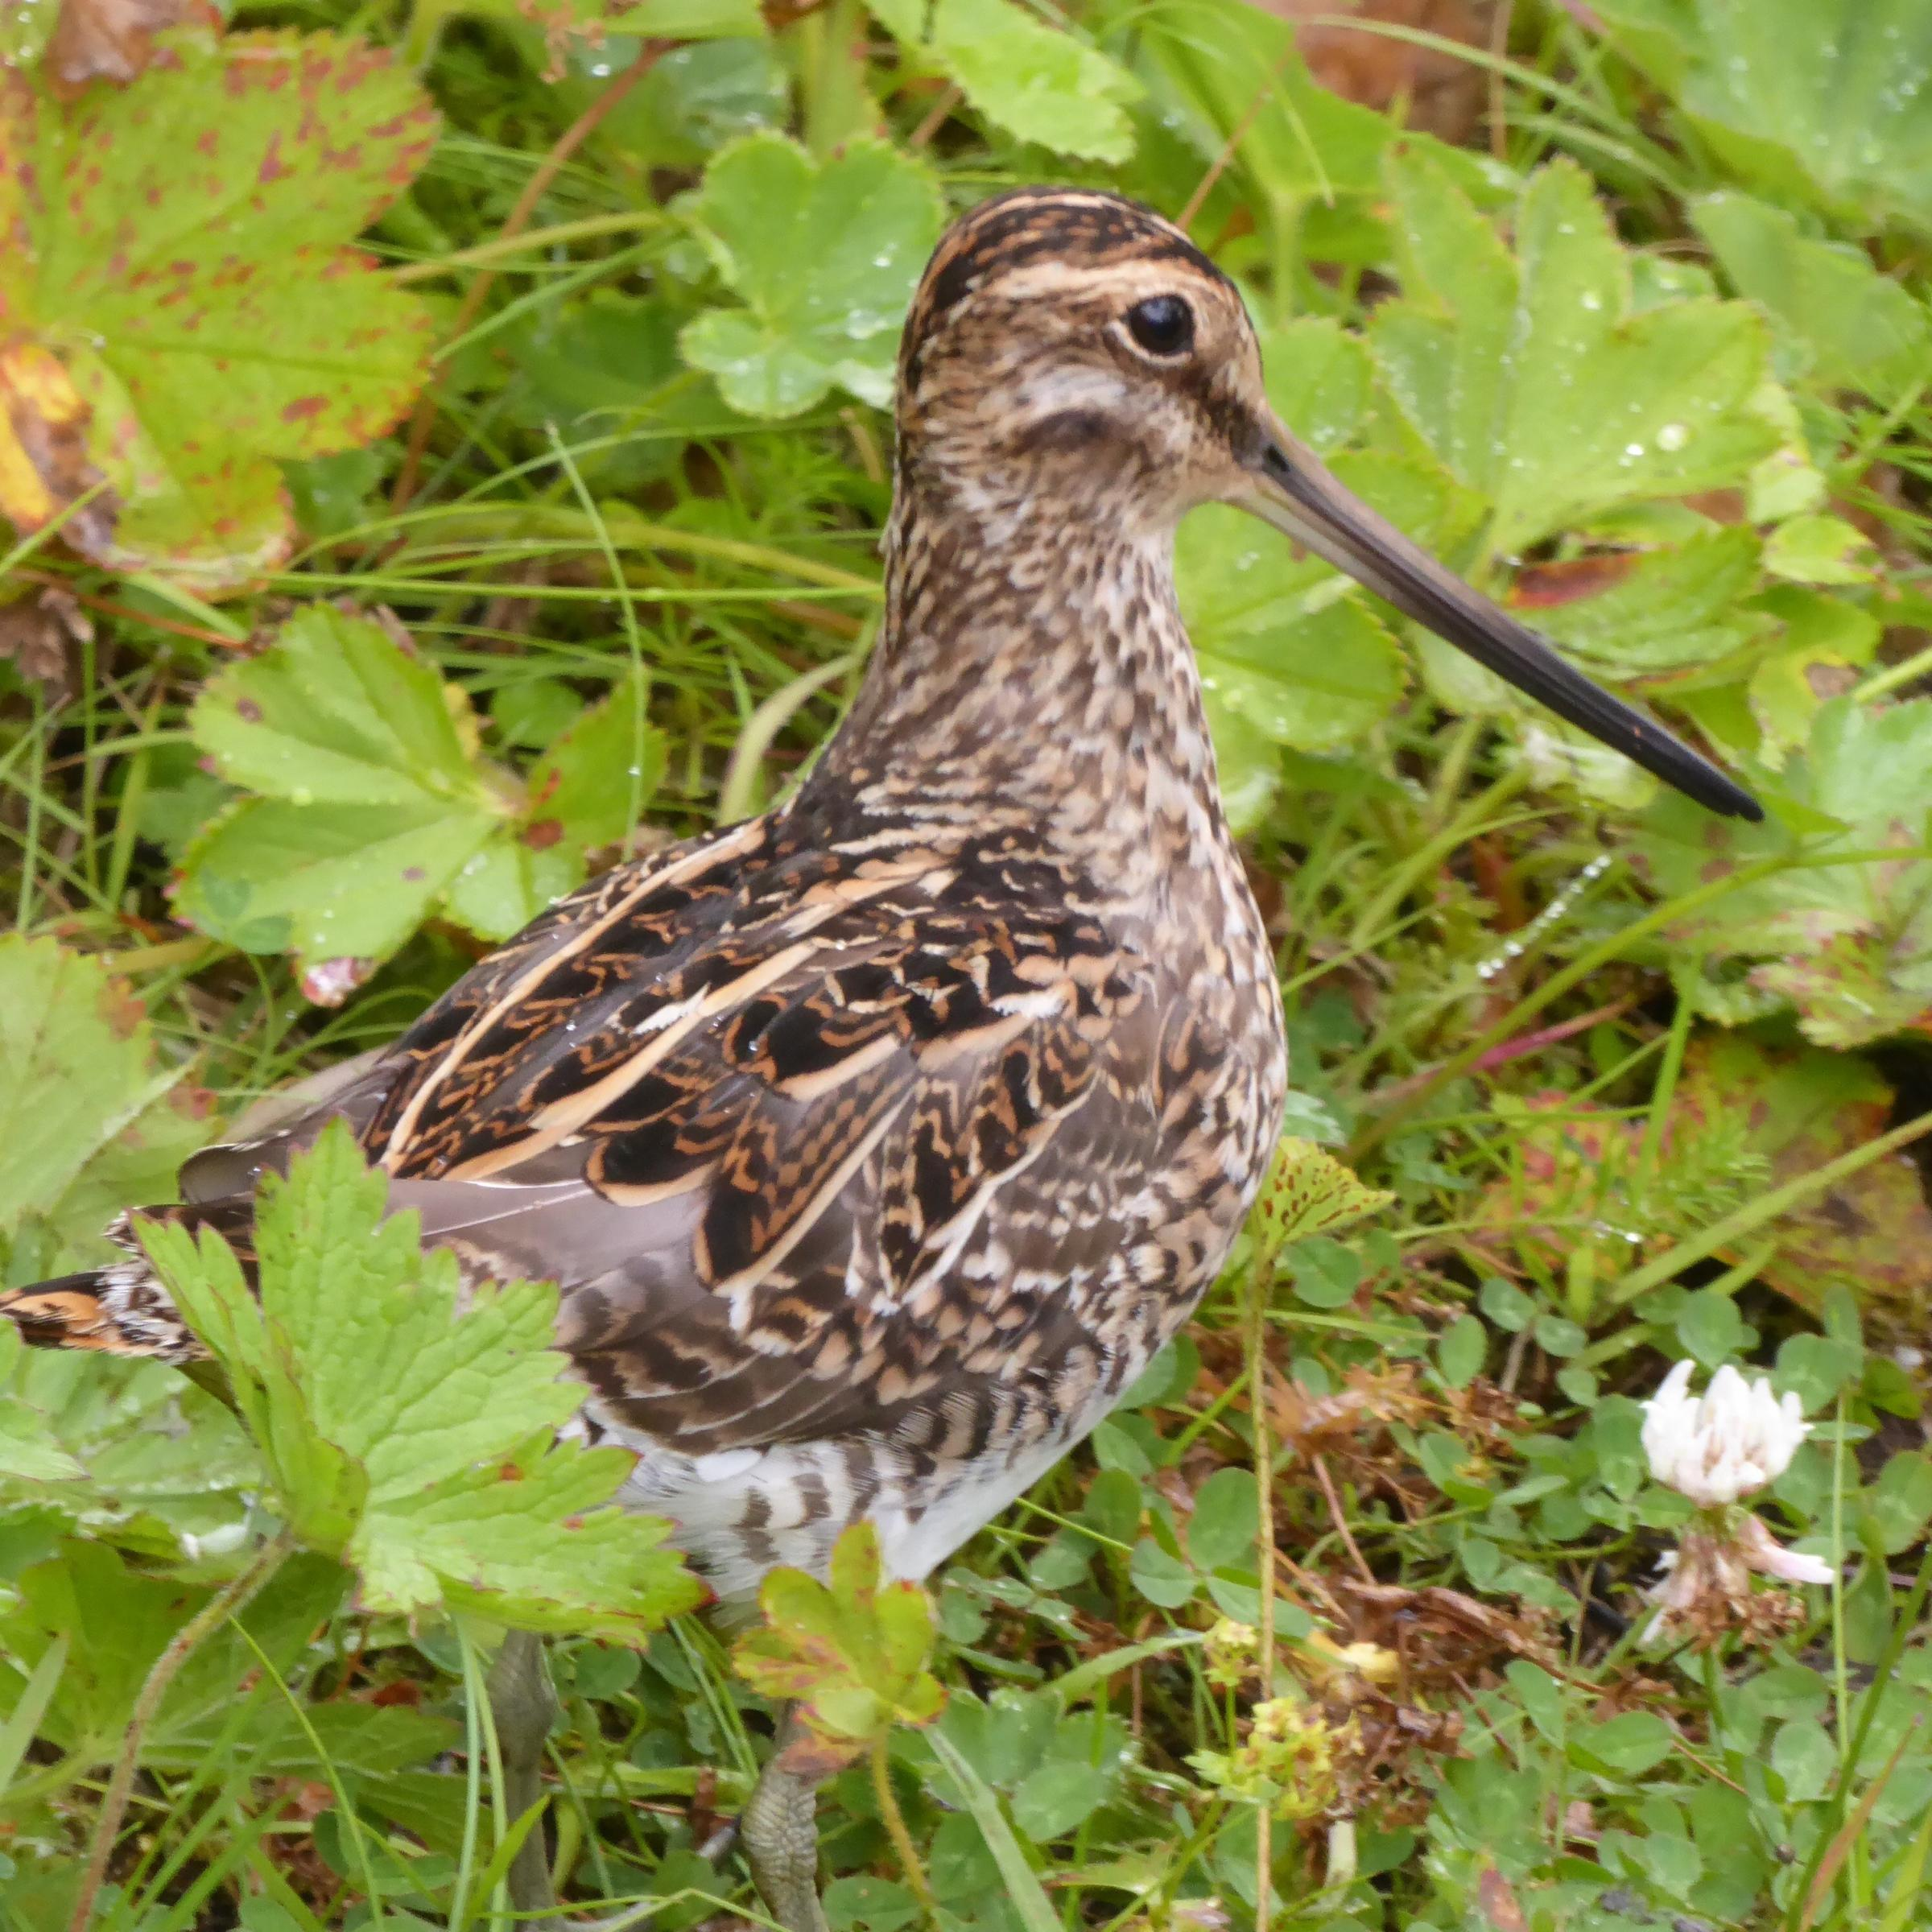 Icelandic snipe showing its distinctive long bill